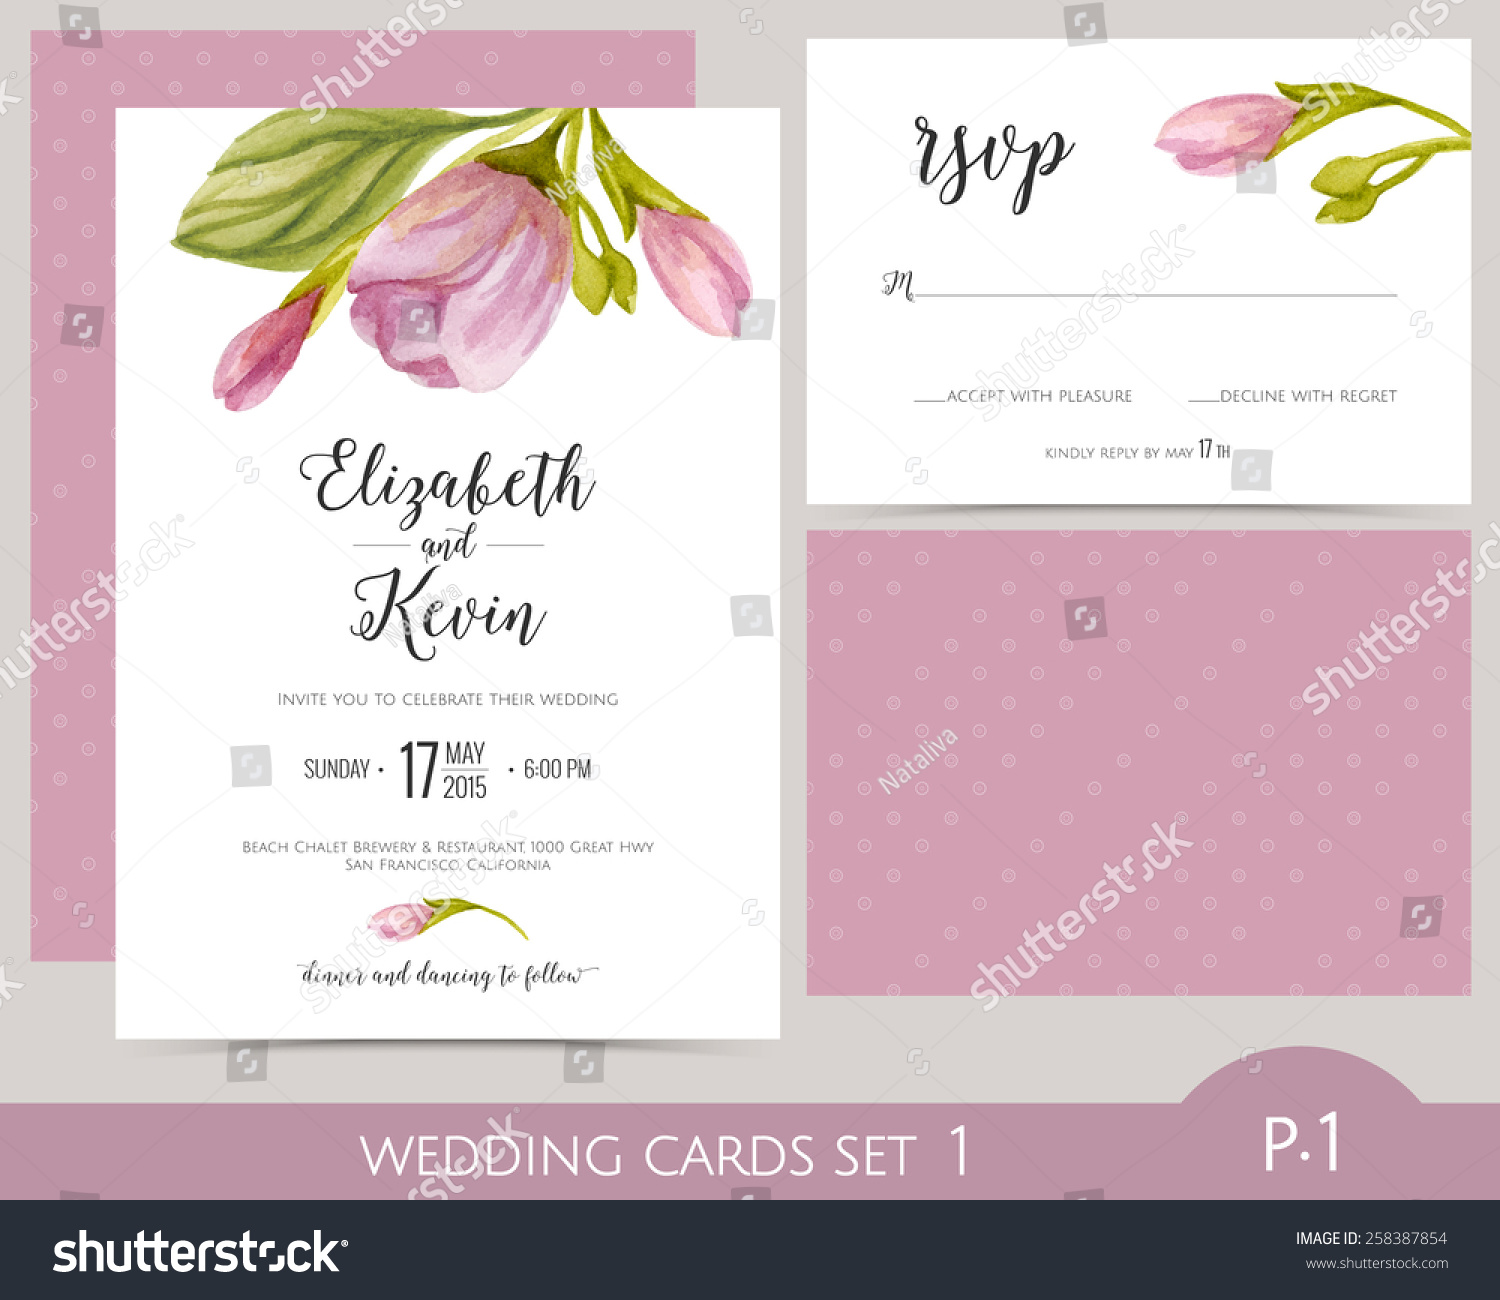 Wedding Card Set With Watercolor Flowers Invitation RSVP Cards